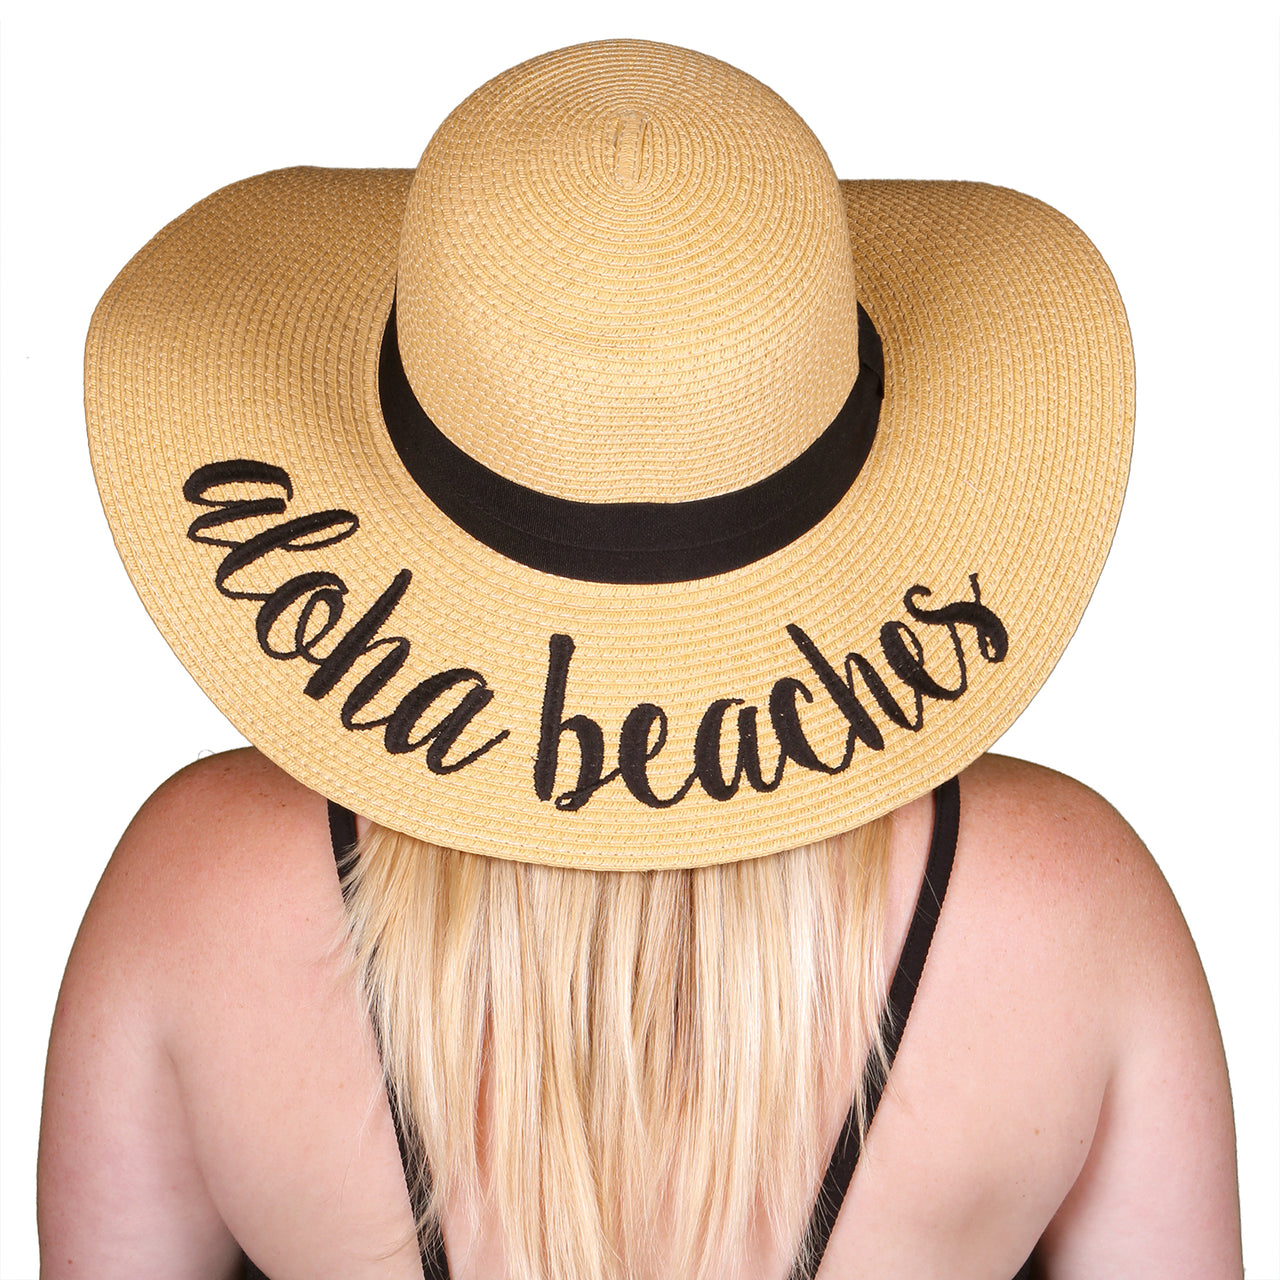 C.C Embroidered Sun Hat - Aloha Beaches